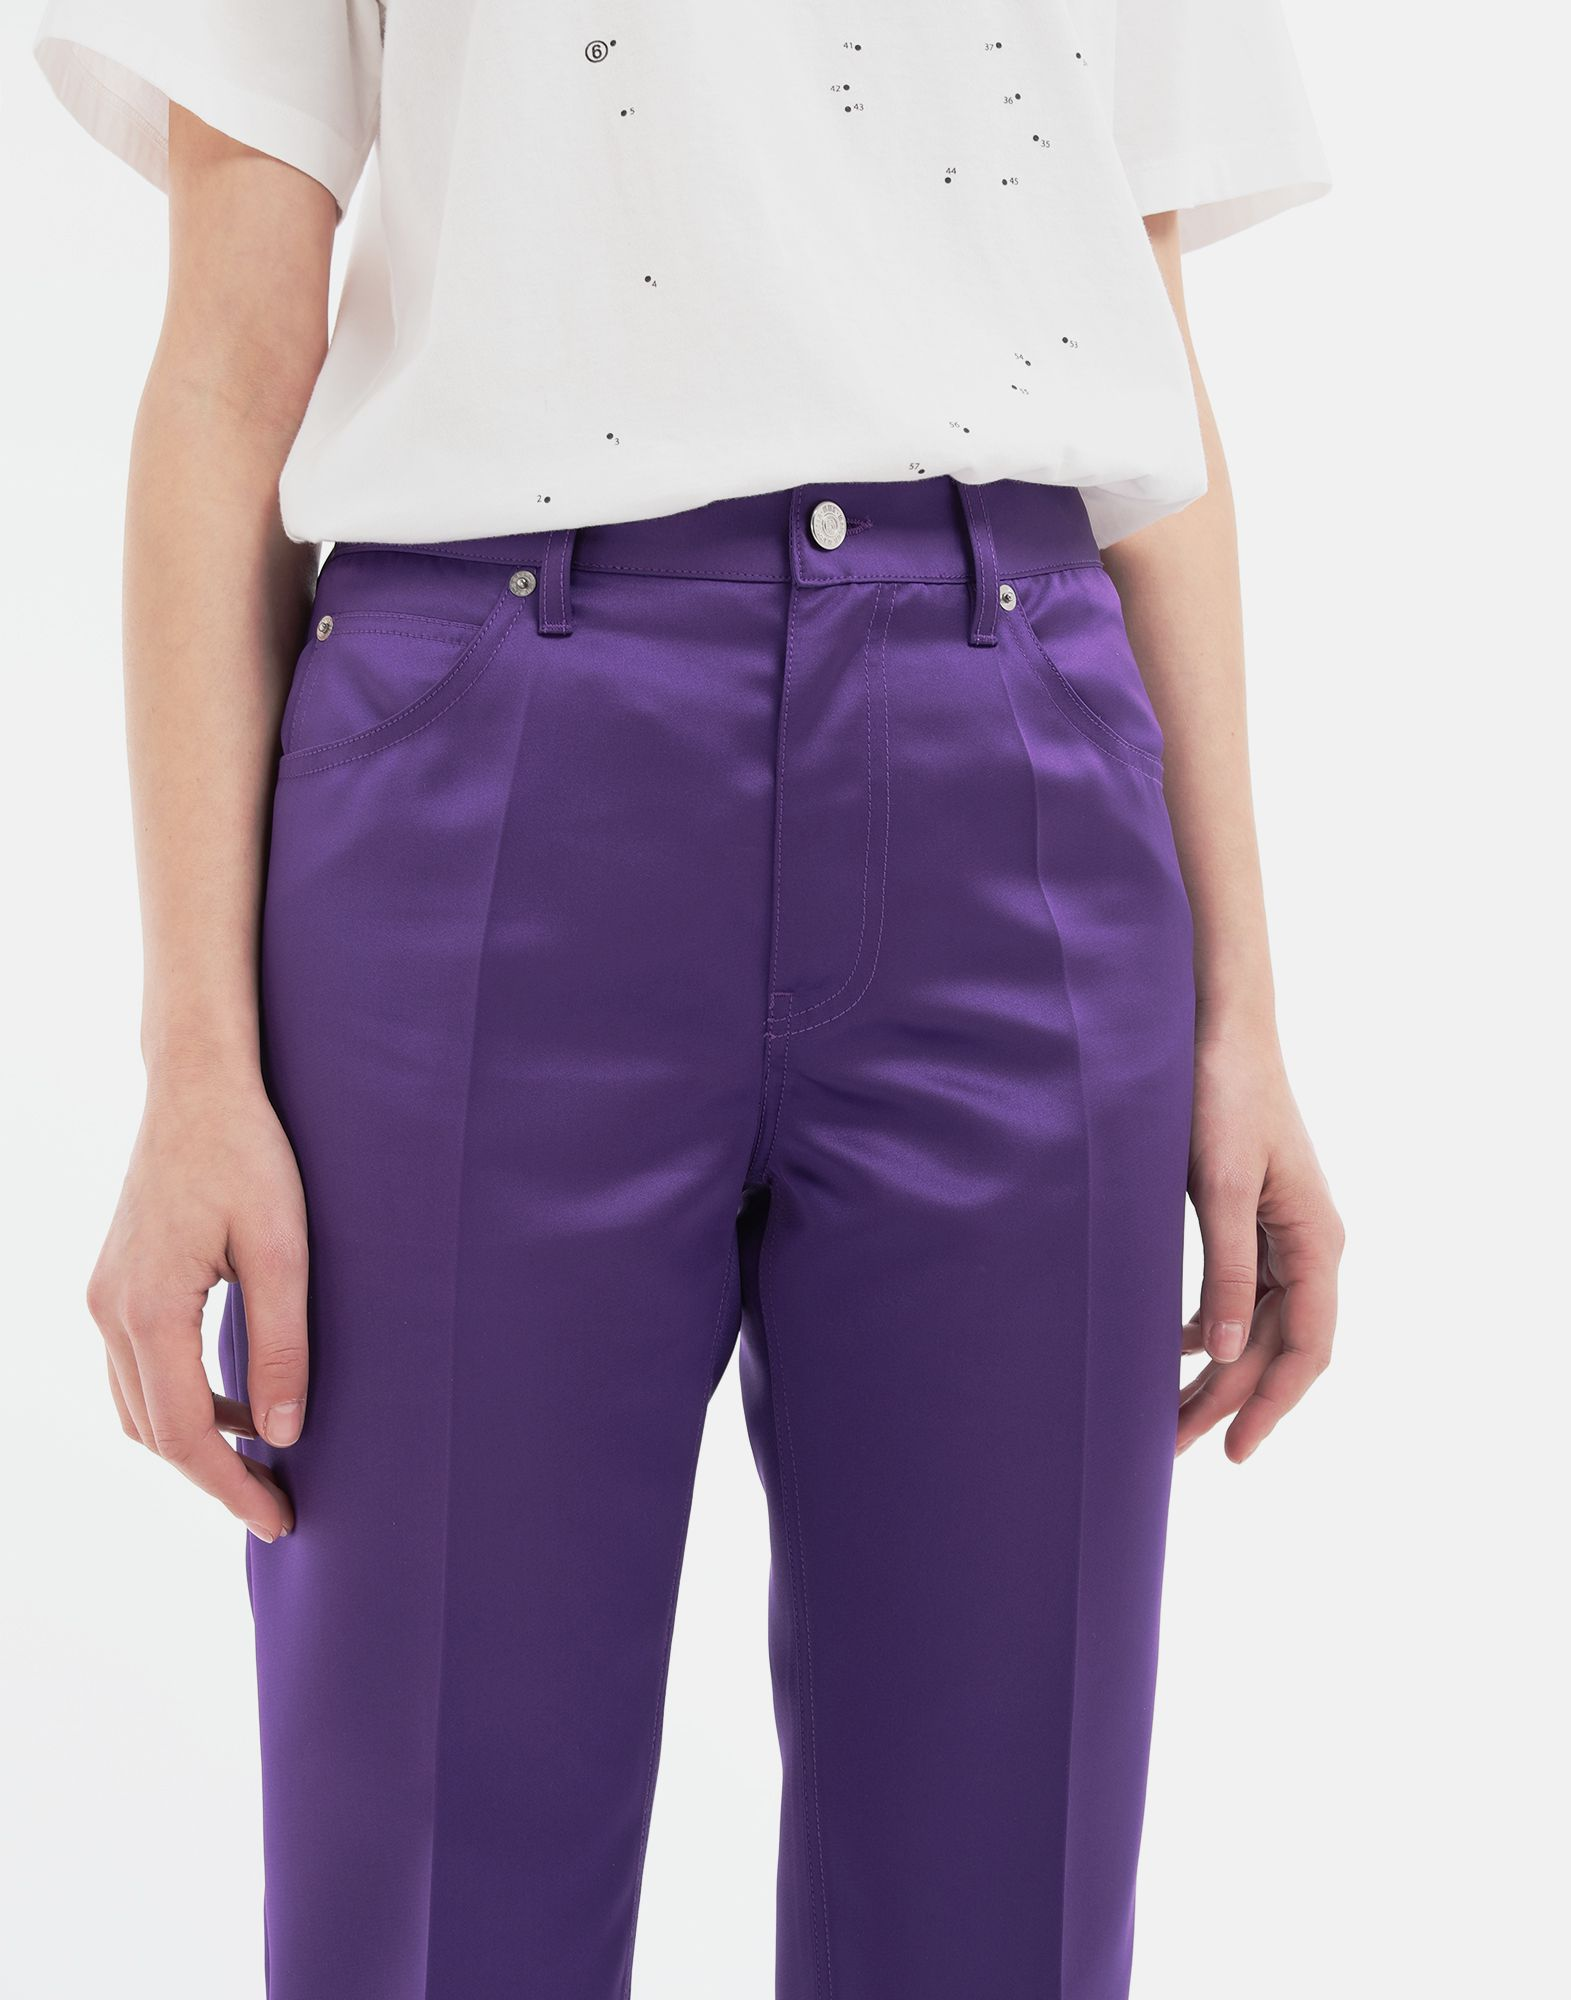 MM6 MAISON MARGIELA High-waisted trousers Trousers Woman a